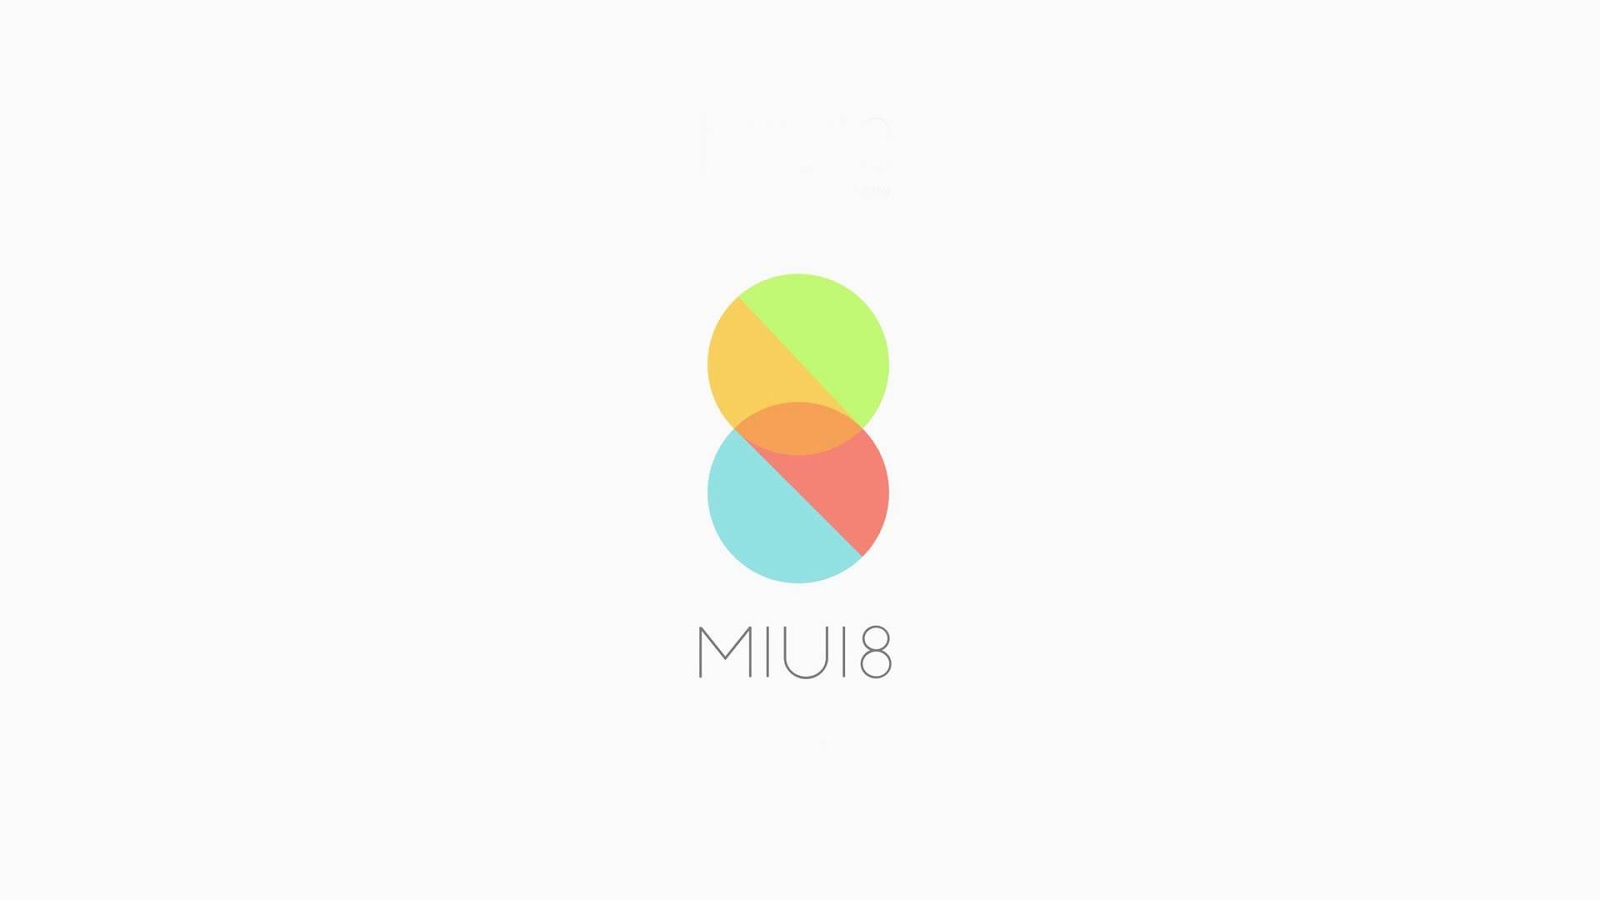 MT6592: [STABLE][GLOBAL] MIUI 8 V6 9 15 For Infinix X551 - TechubNG